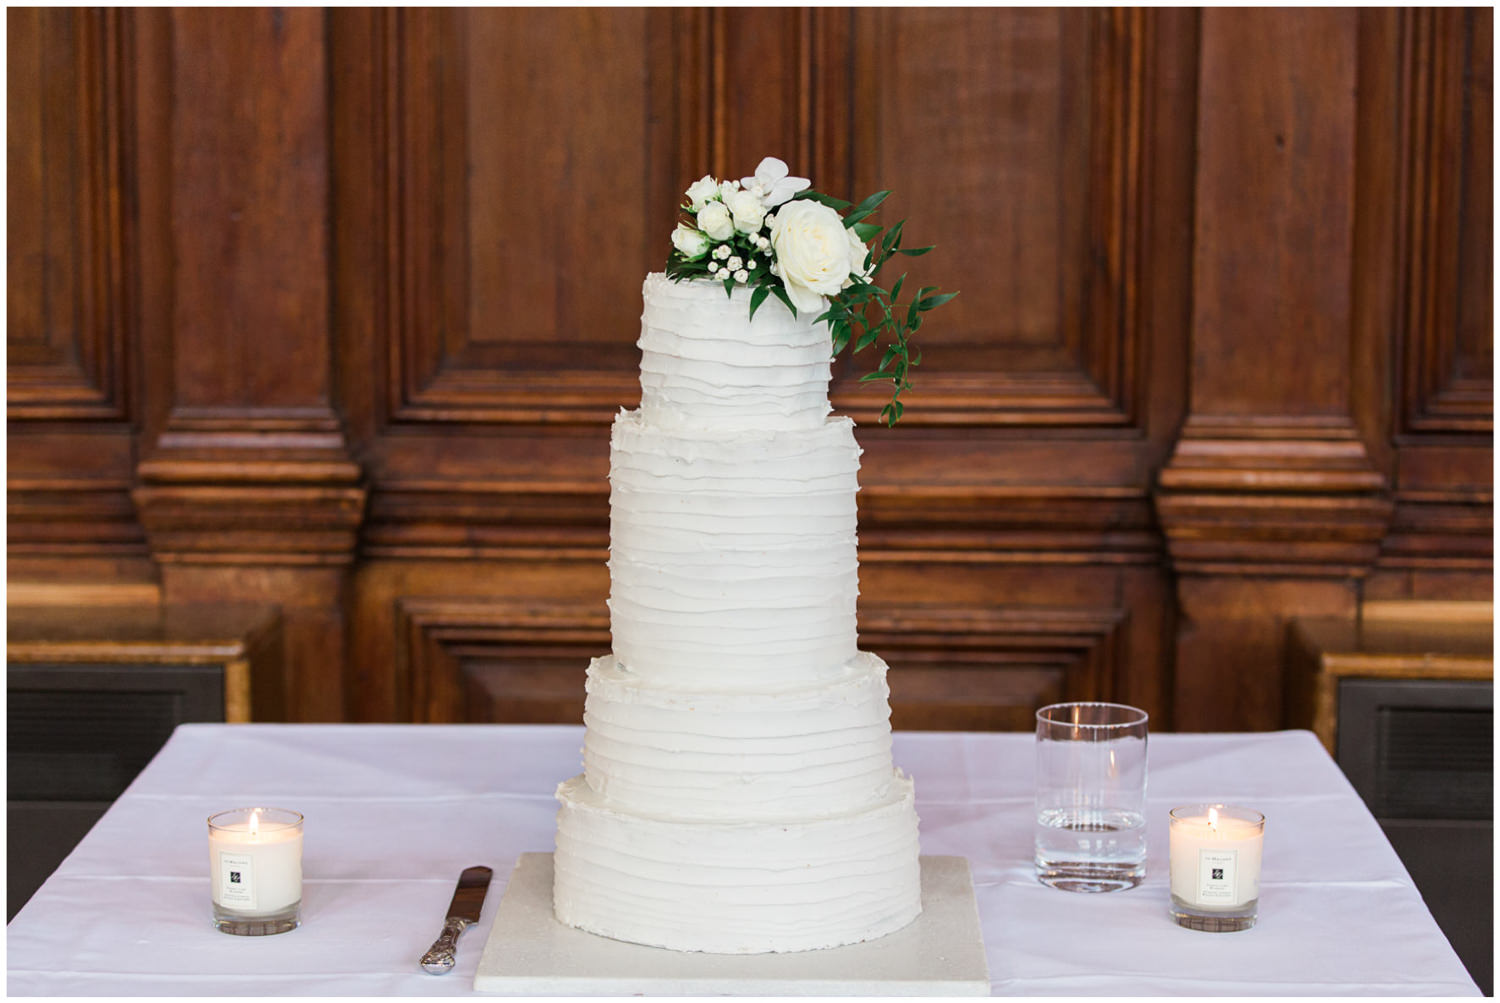 Classic wedding cake by Nadya's cakes and bakes, Lucy Davenport Photography, Classic wedding